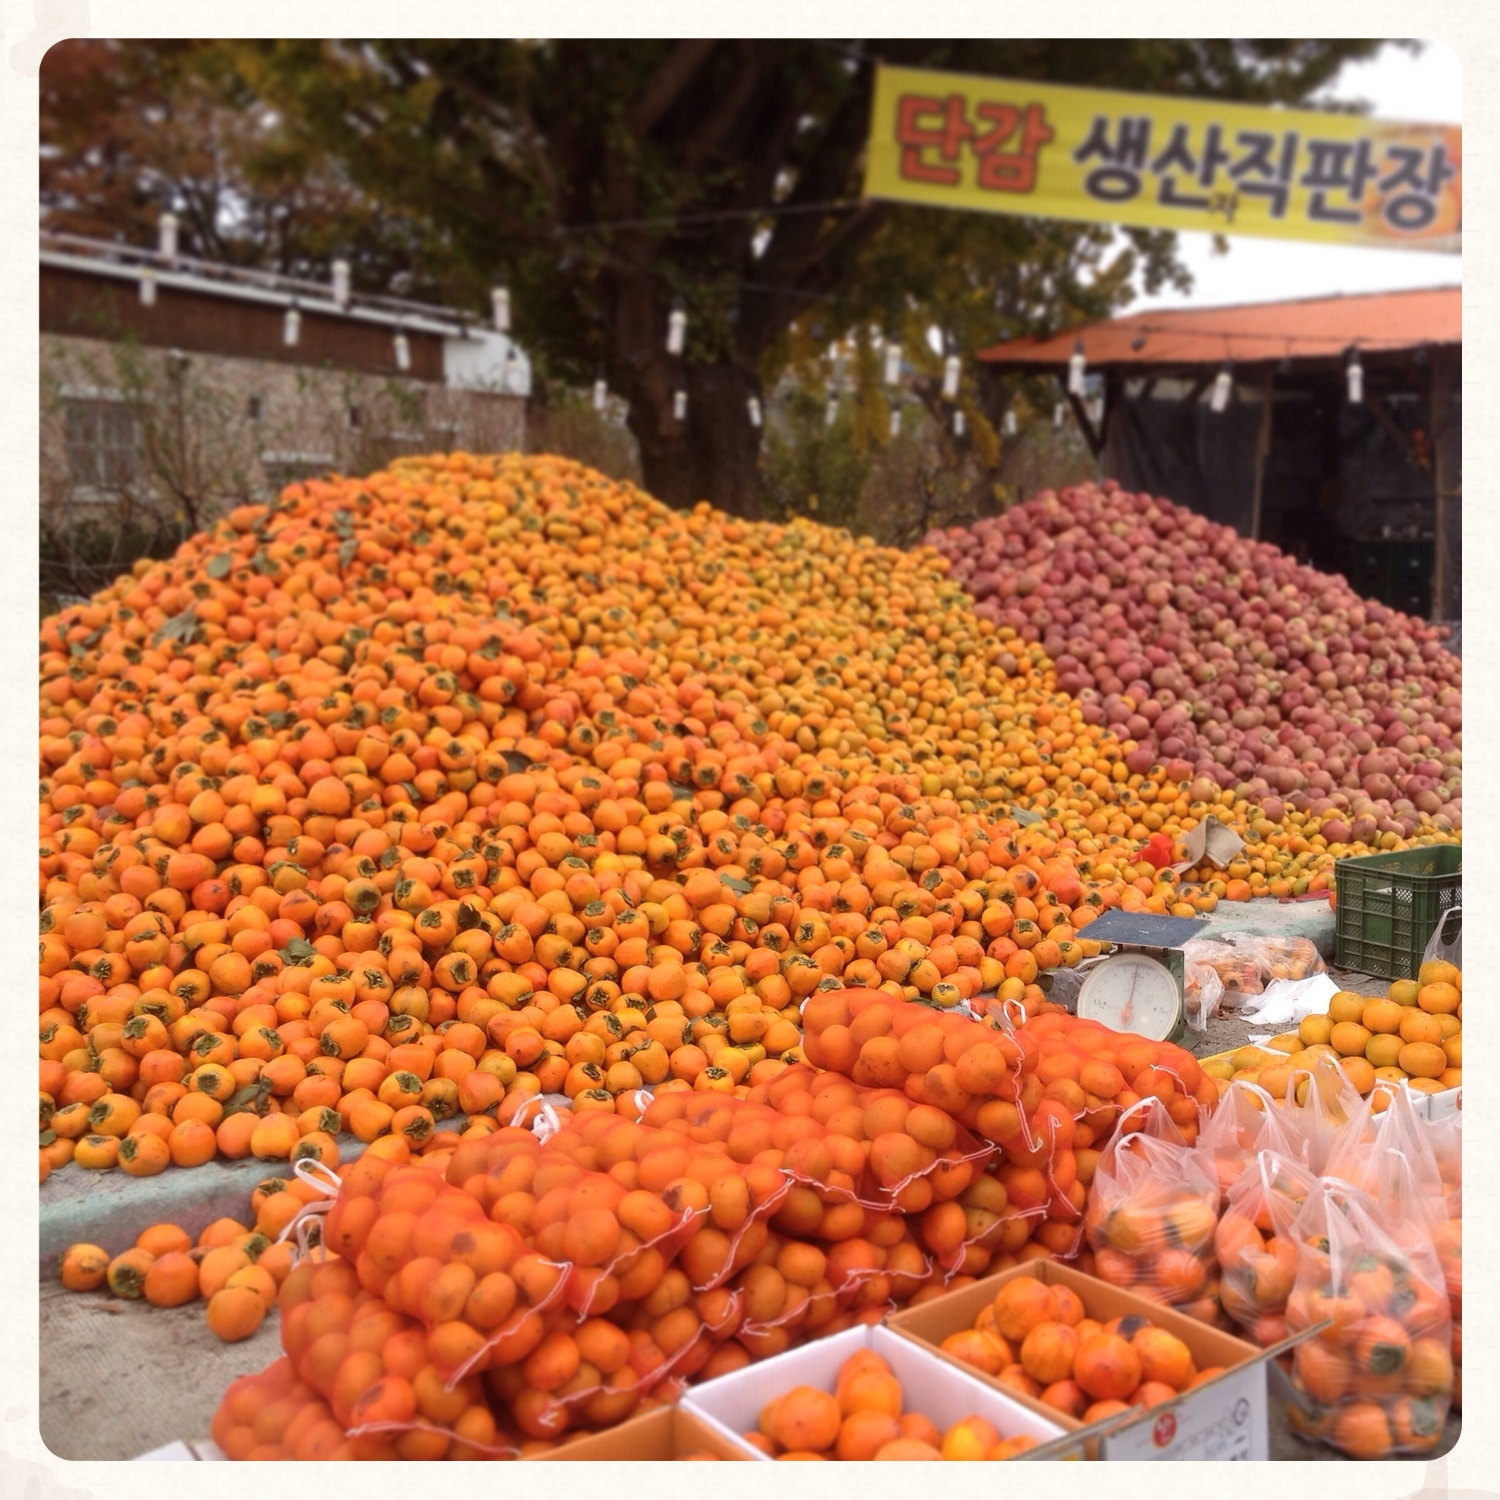 Giant pile of persimmon and apples for sale out in the country side near Seorak Mountain. What a beautiful sight! Just be careful you don't eat TOO many all at once - although these are fruit and are good for you, overeating them can cause you constipation. Too much of anything is never a good thing!